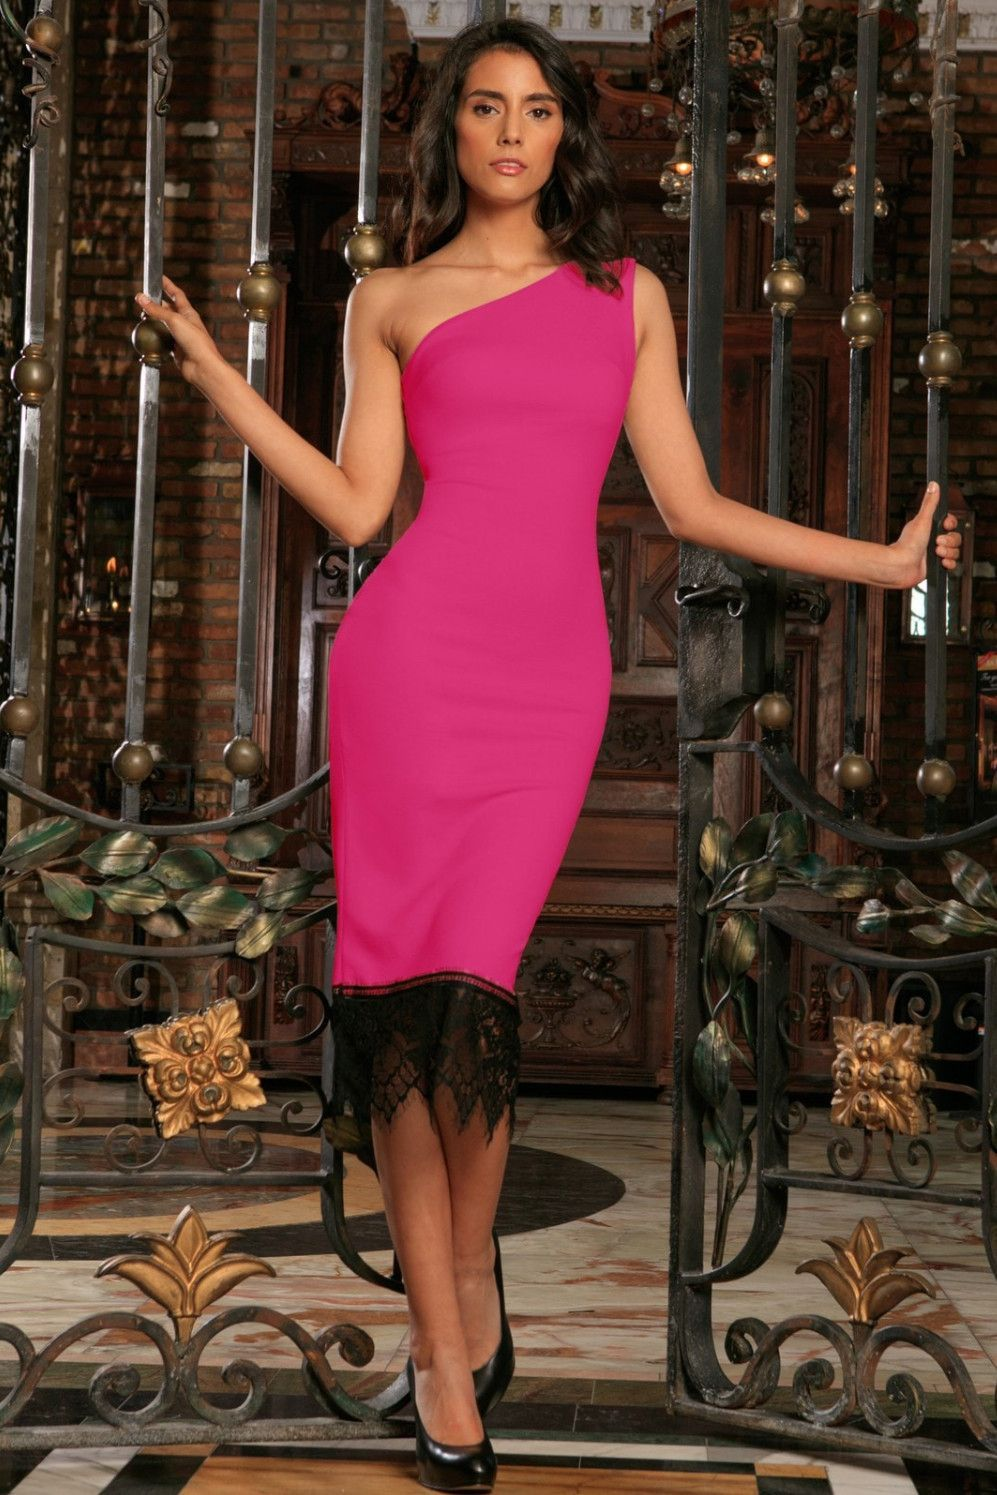 495b4463cda910 Fuchsia Hot Pink Stretchy One-Shoulder Bodycon Party Dress - Women ...